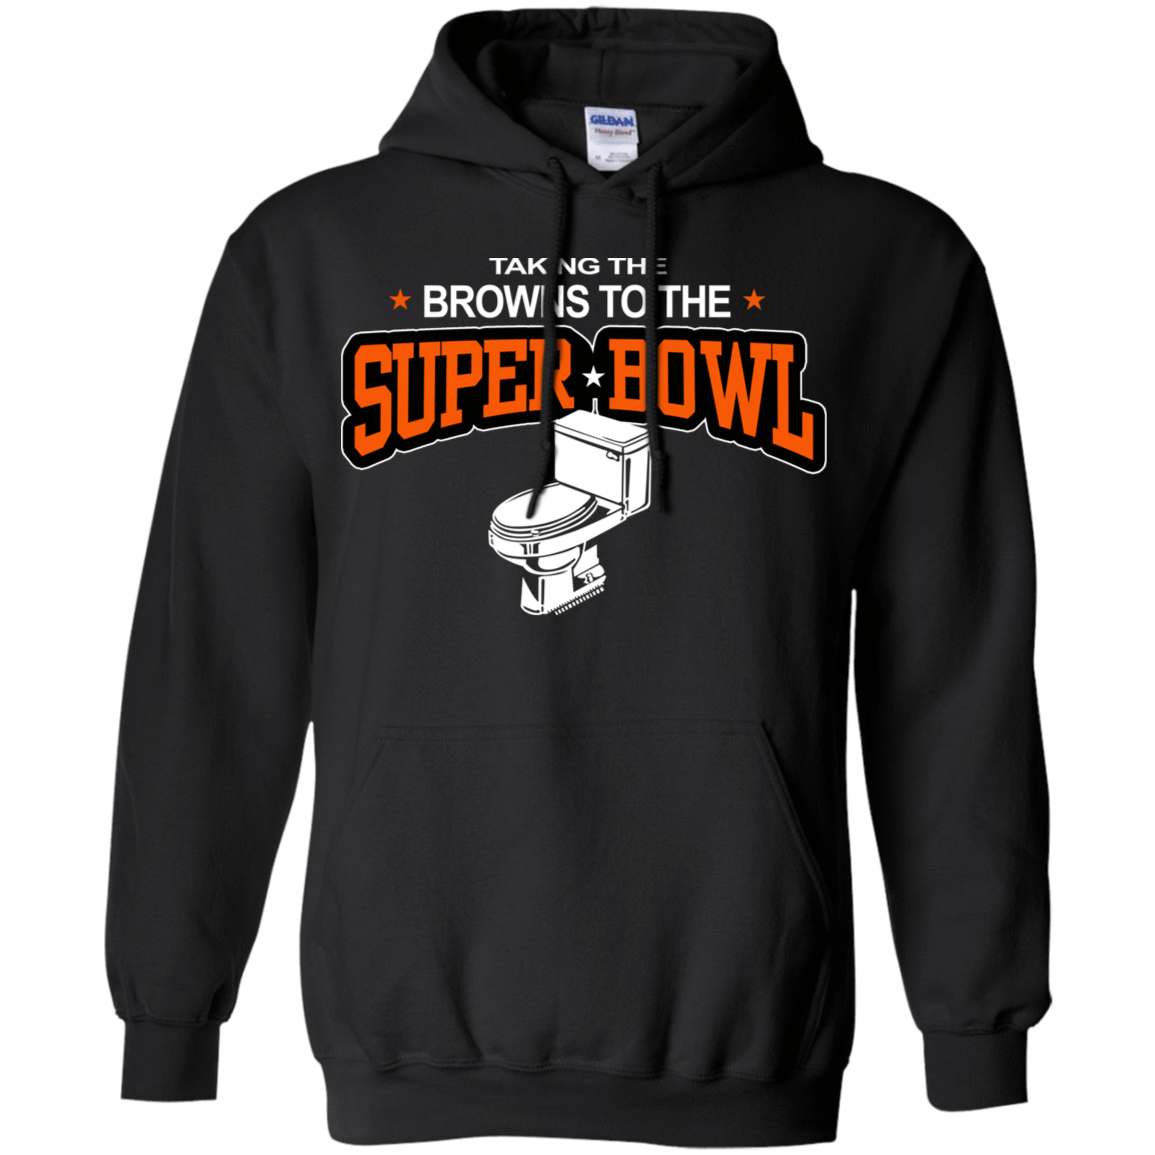 Talking The Browns To The Super Bowl T-Shirts, Hoodie, Tank 541-4740-78230013-23087 - Tee Ript